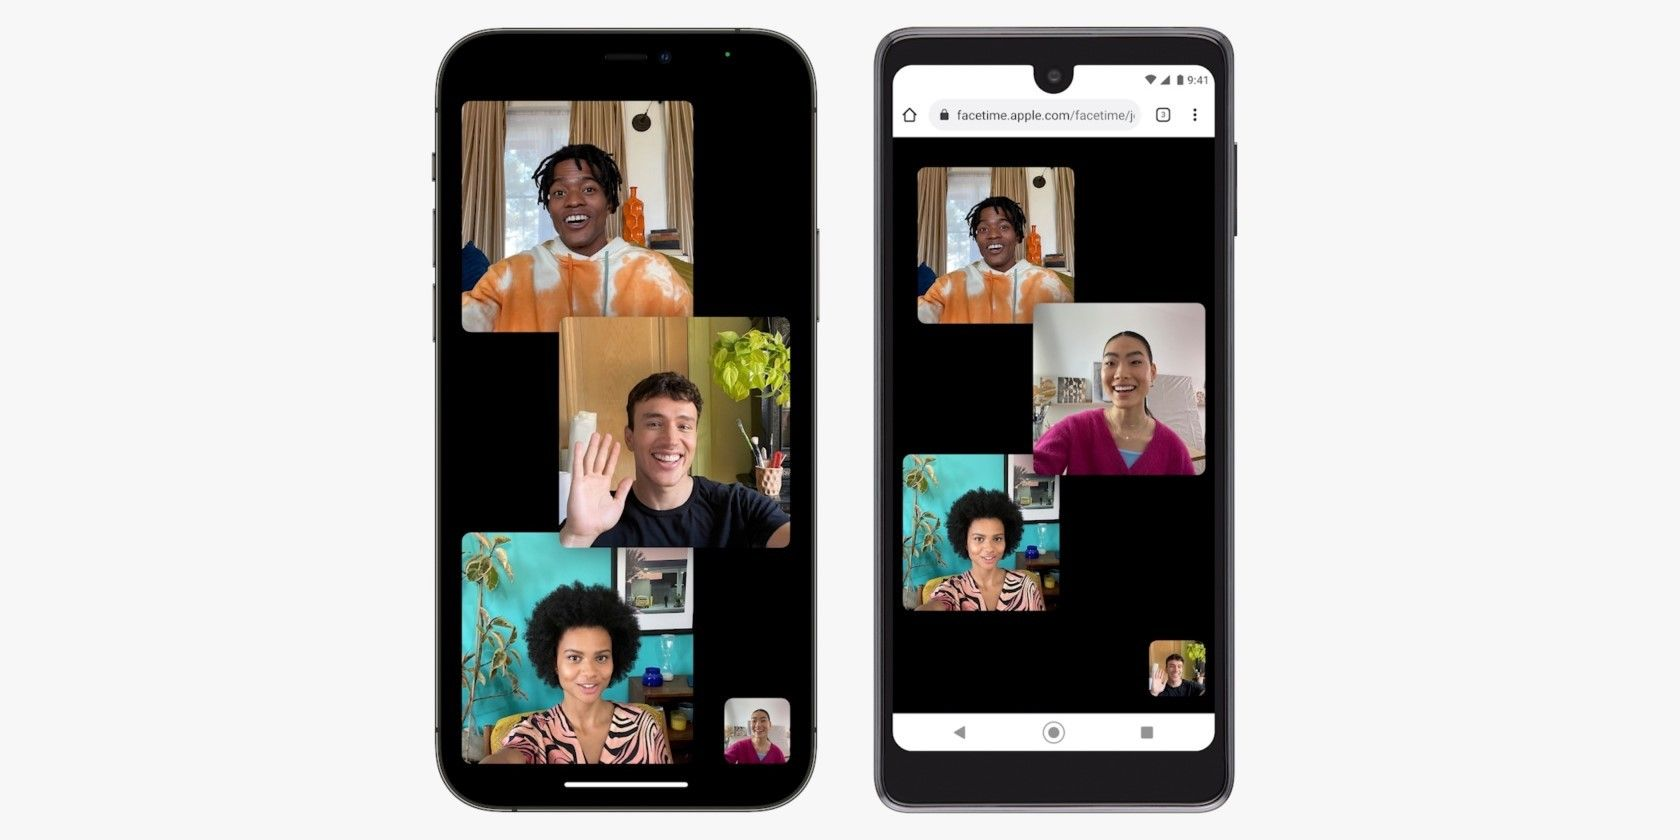 FaceTime Gets a Major Revamp in iOS 15